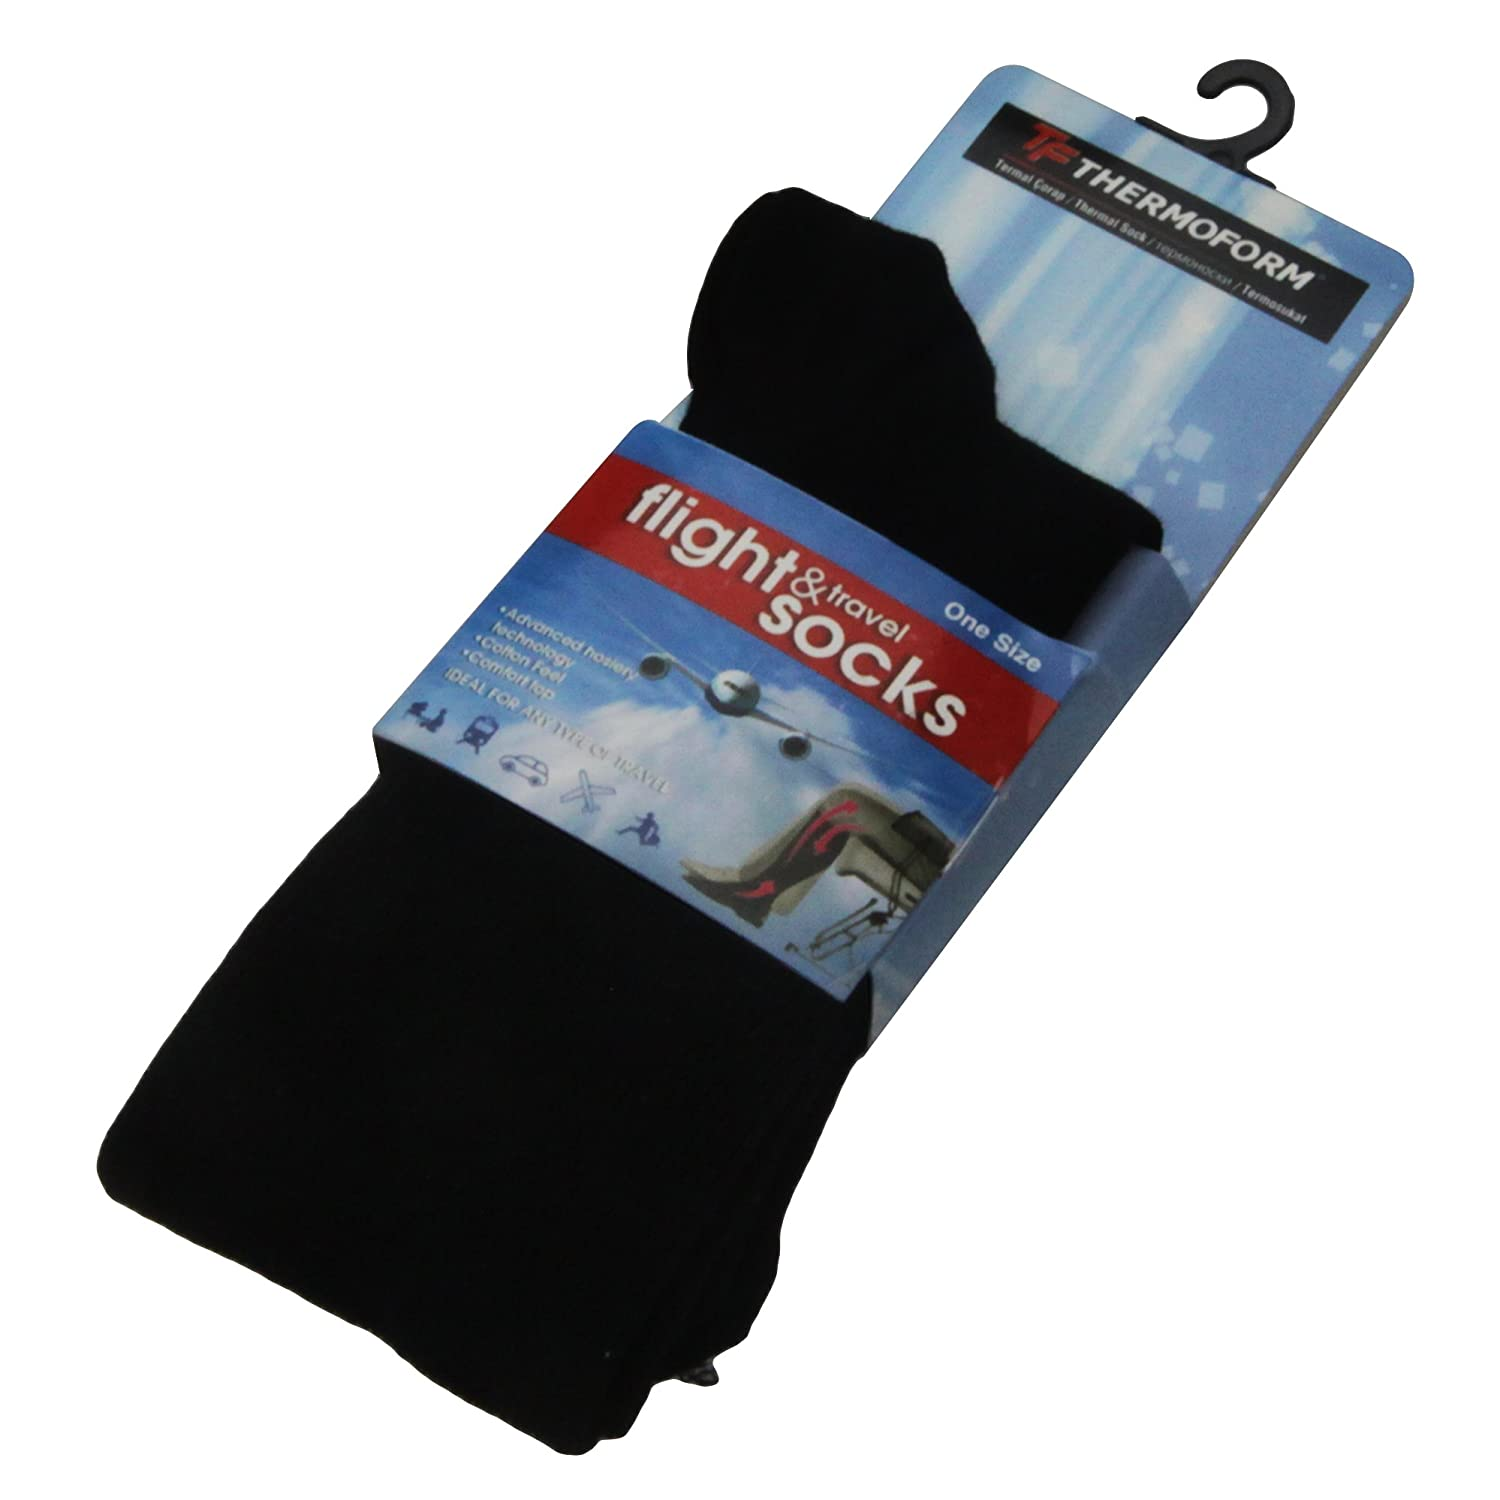 Thermoform HZTS-34 - Thermosocken mit sanfter Kompression - Ideale TRAVEL & FLIGHT SOCKS - One Size